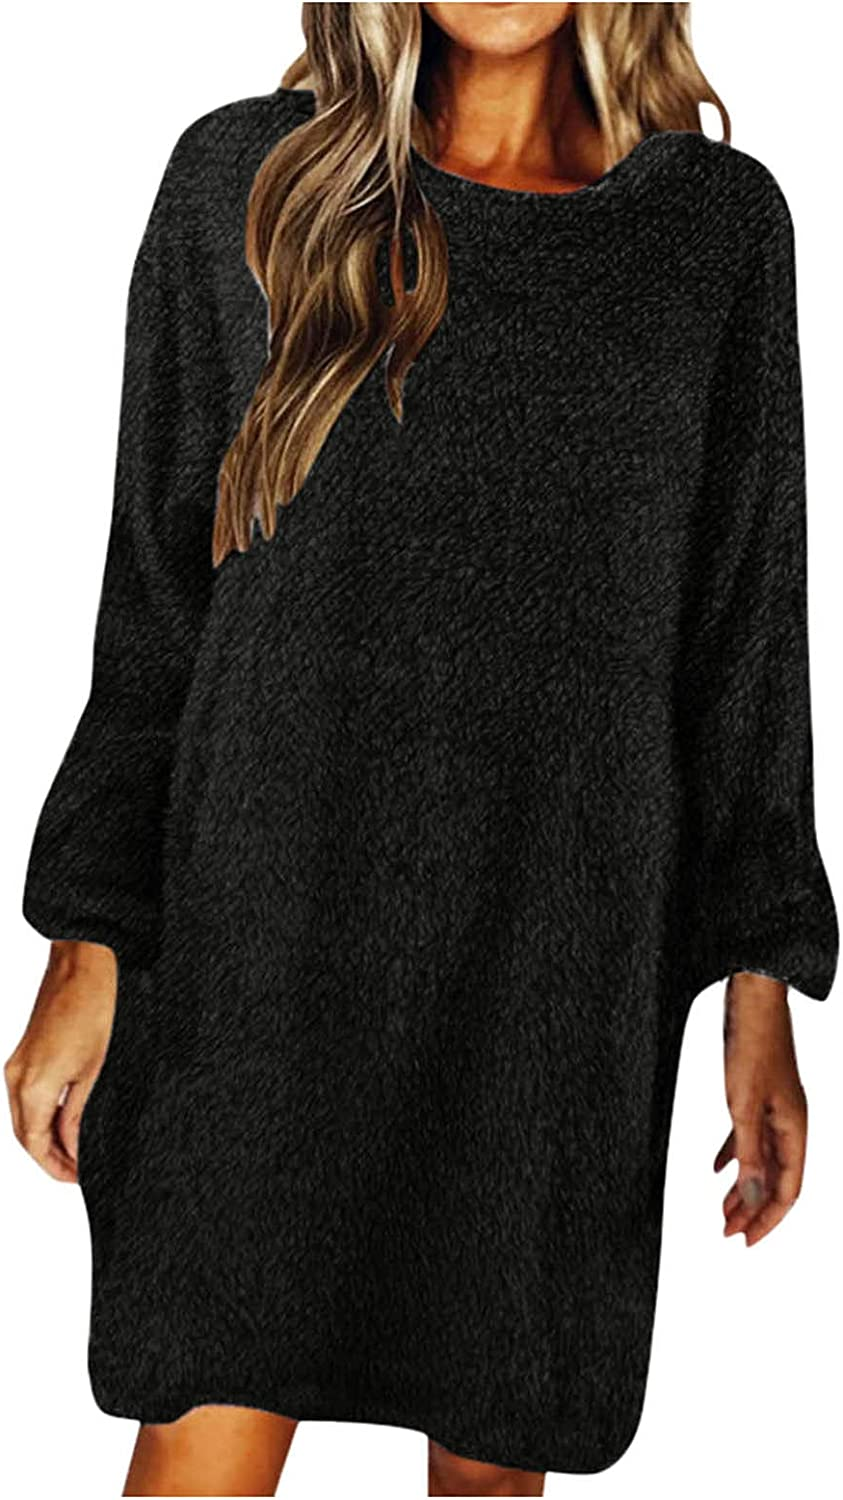 Womens Plush Sweater Dress O Neck Long Sleeve Autumn Winter Loose Party Mini Dress Solid Color Casual Dresses Fuzzy Hoodies